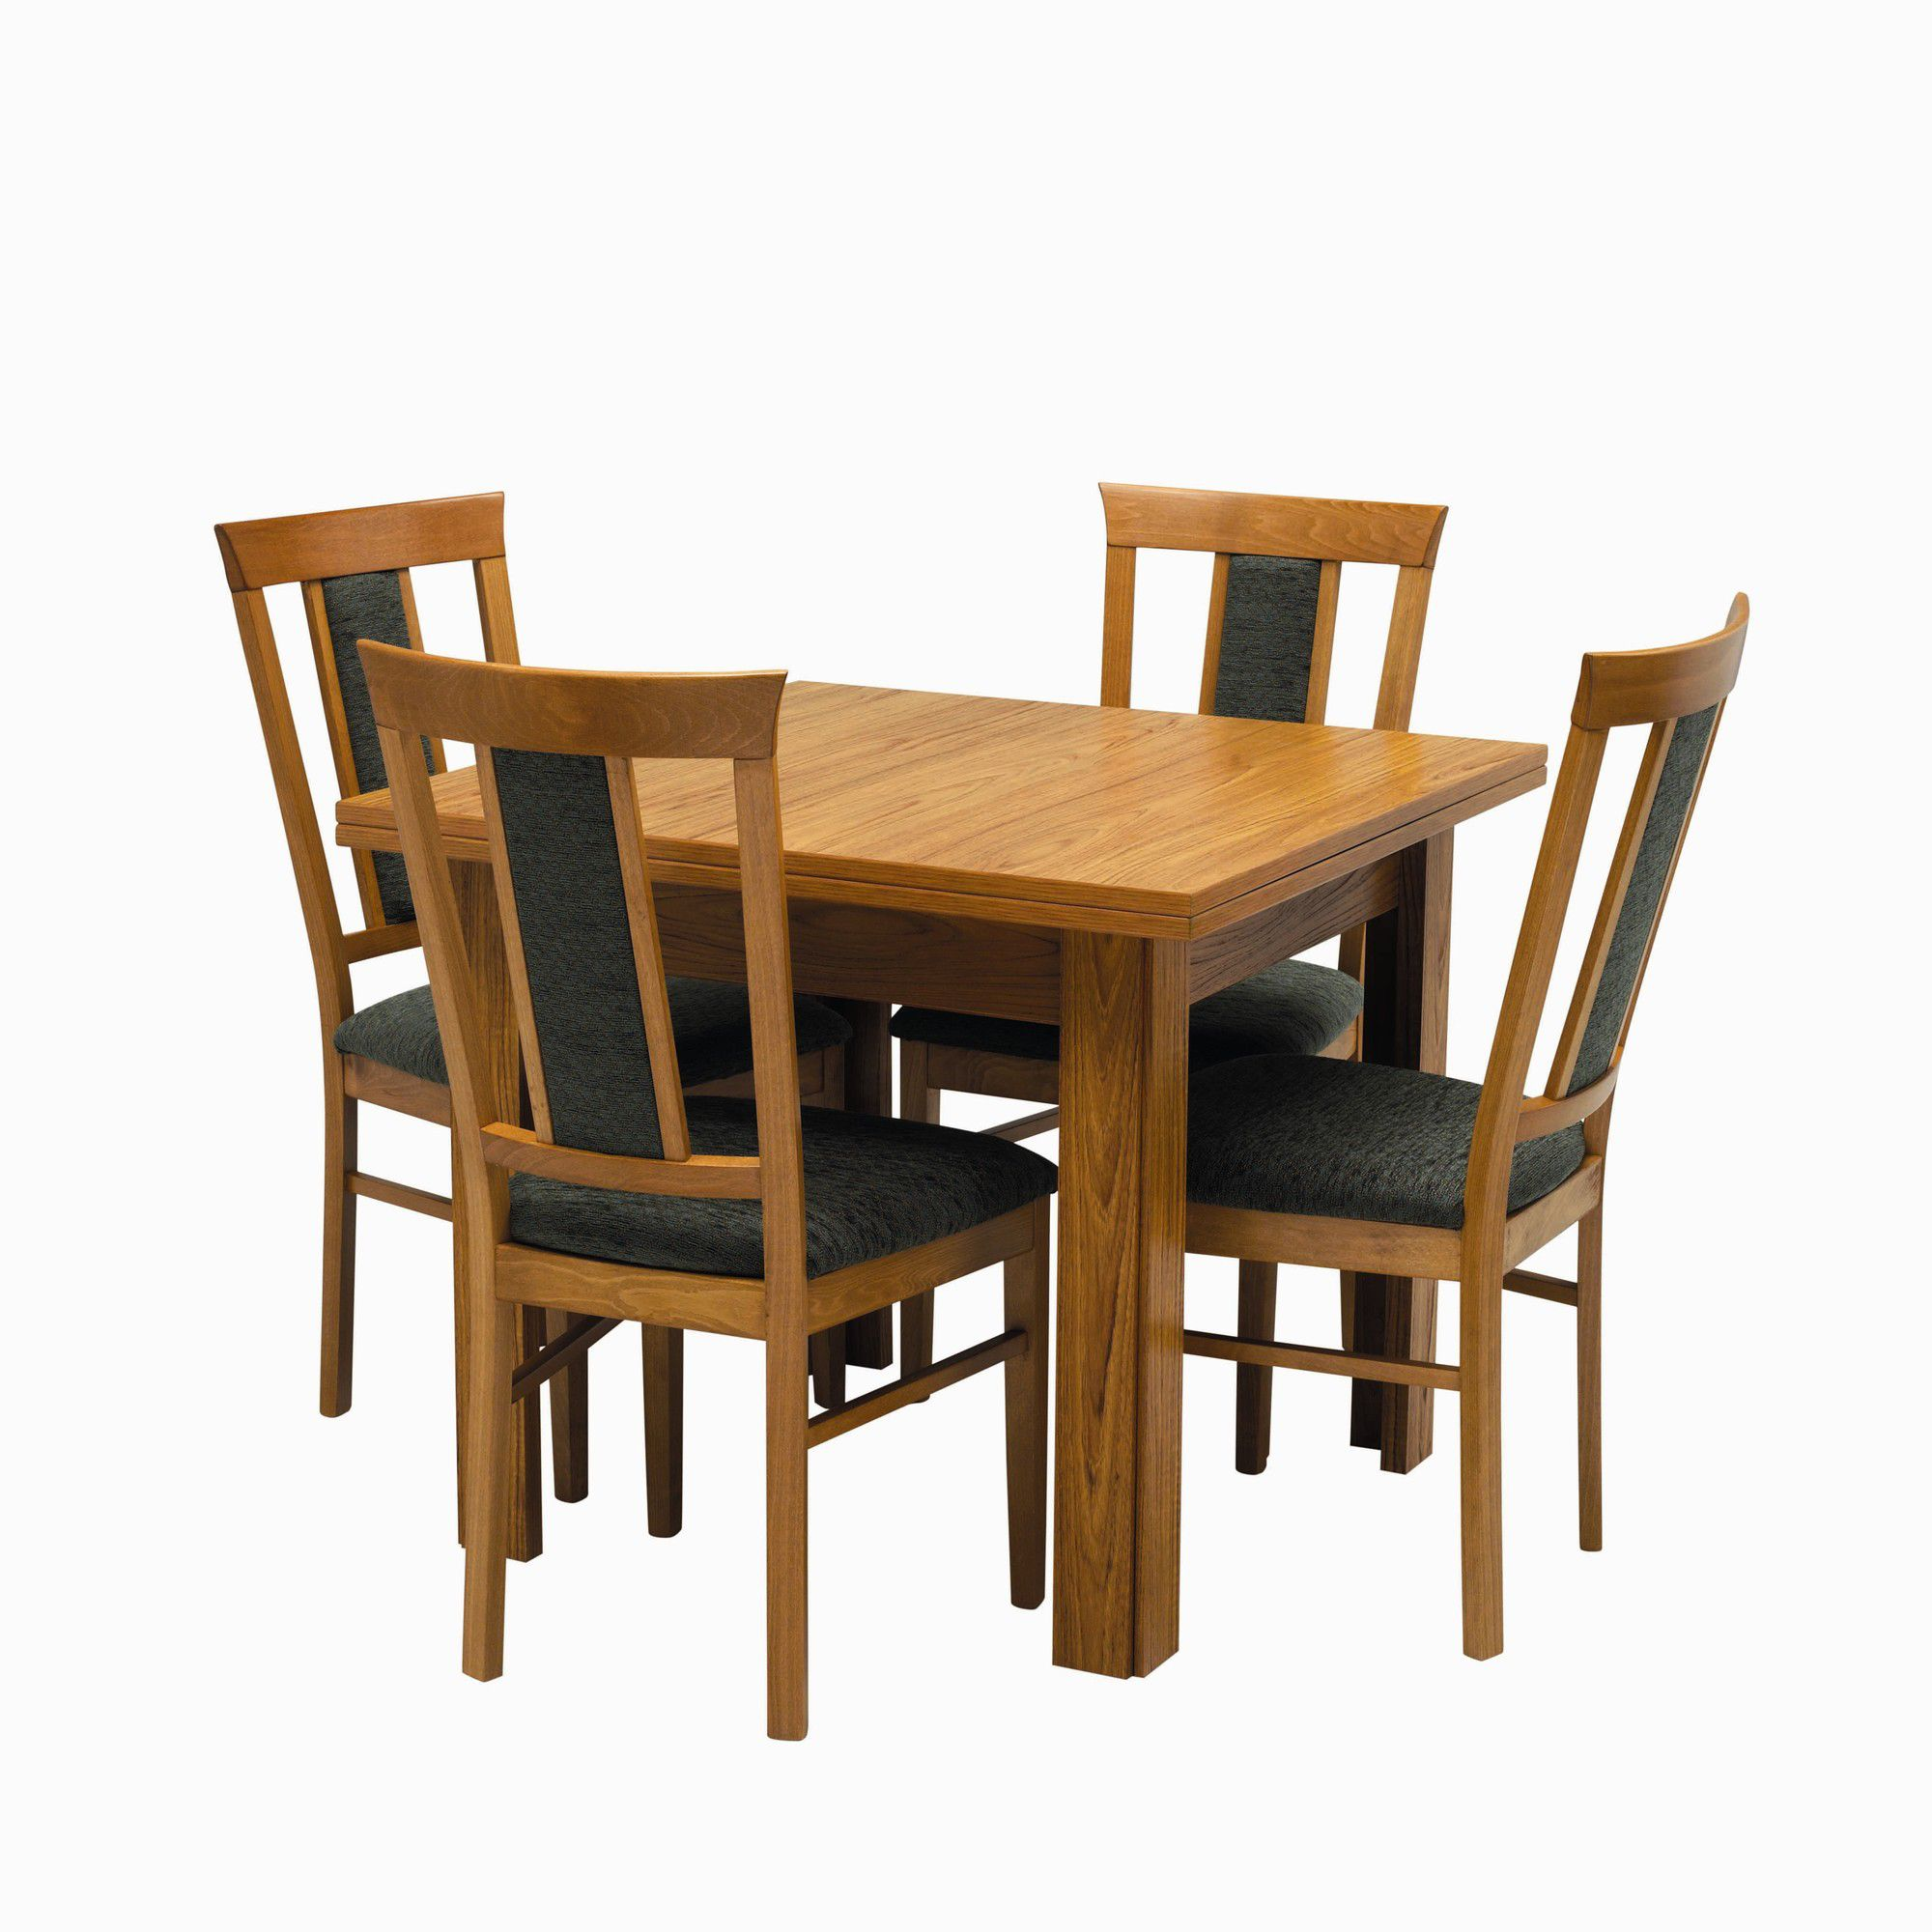 Caxton Tennyson Butterfly 4 Chair Dining Set - Green at Tesco Direct